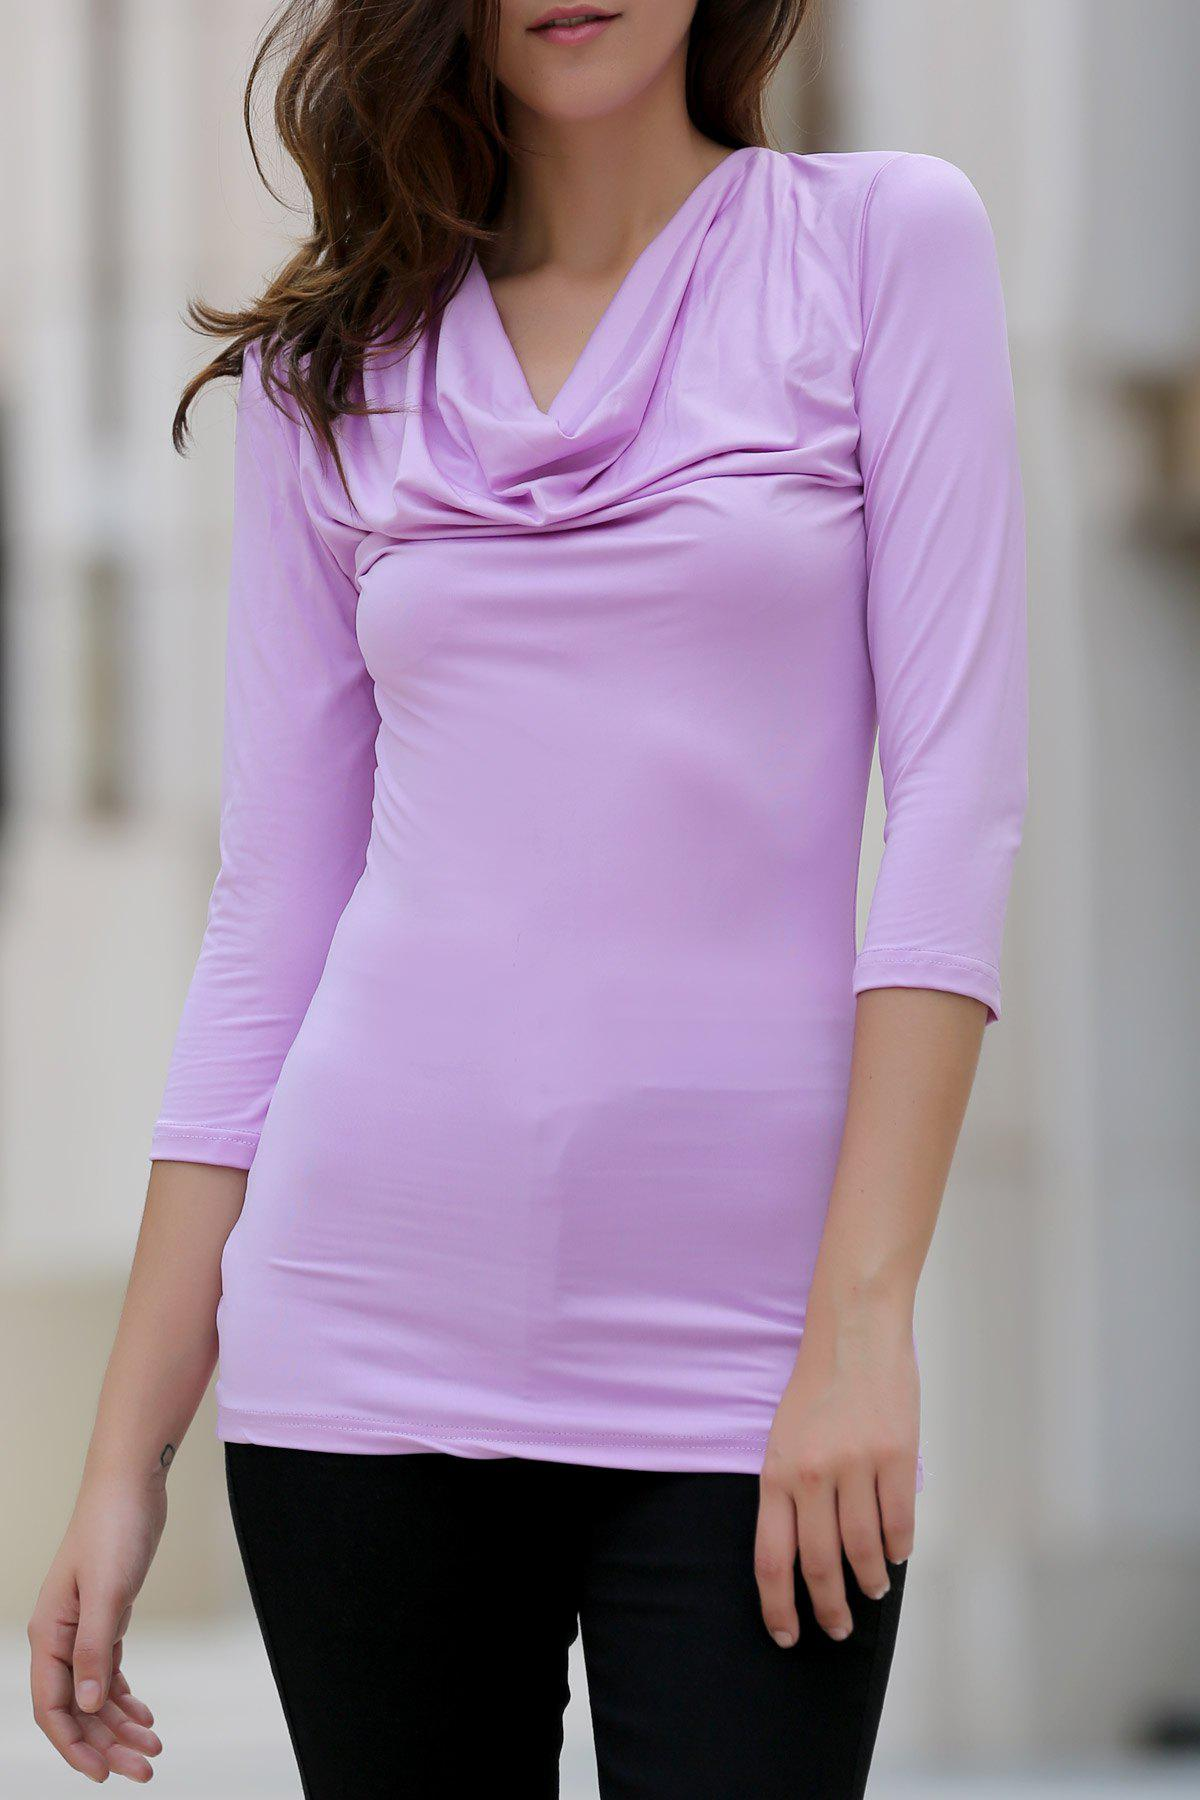 Chic Cowl Neck 3/4 Sleeve Ruffled Pure Color Women's T-Shirt - LIGHT PURPLE M